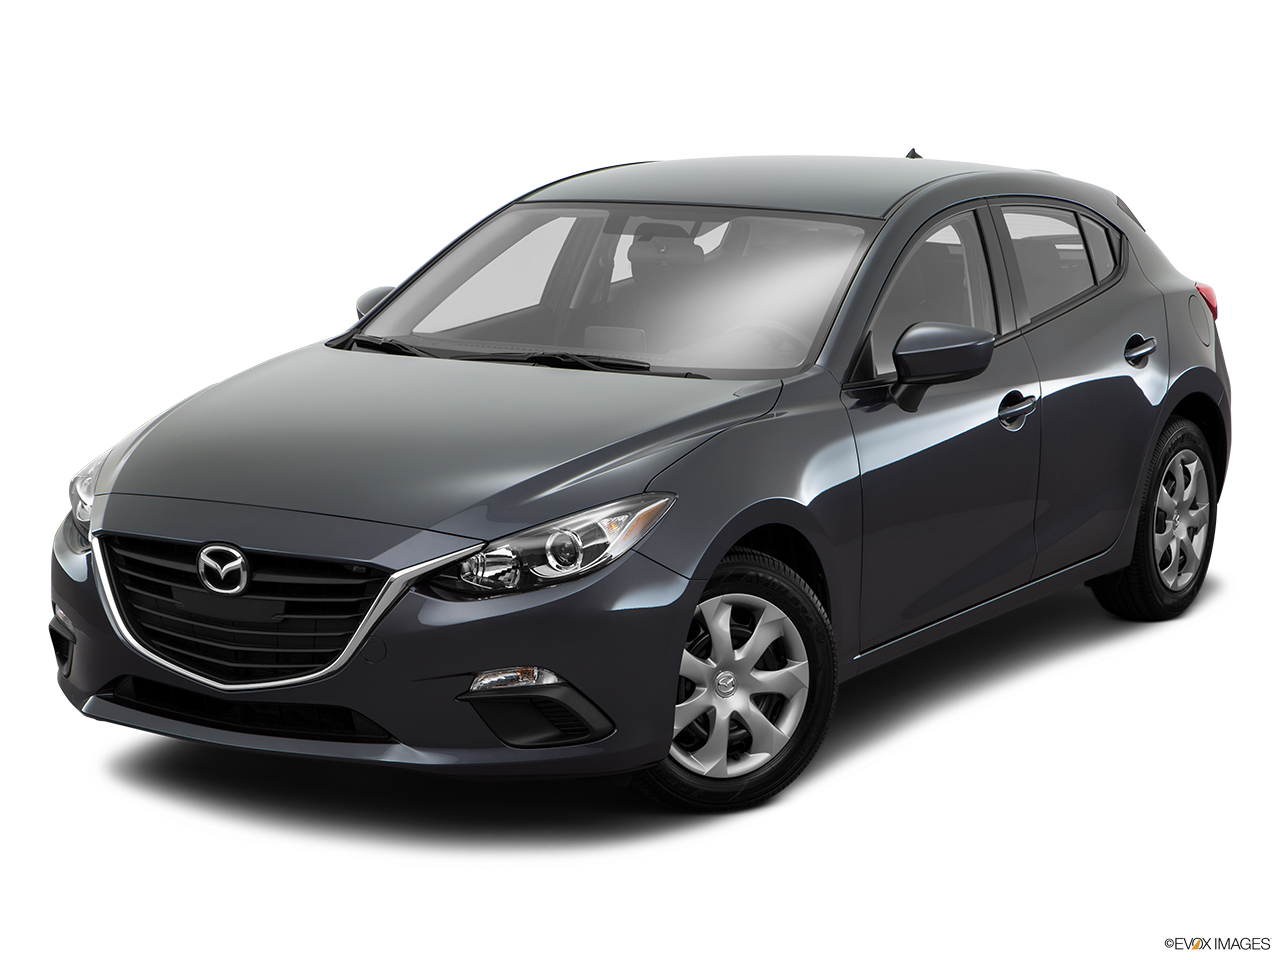 2016 mazda 3 hatchback prices in egypt gulf specs reviews for cairo alexandria and giza. Black Bedroom Furniture Sets. Home Design Ideas